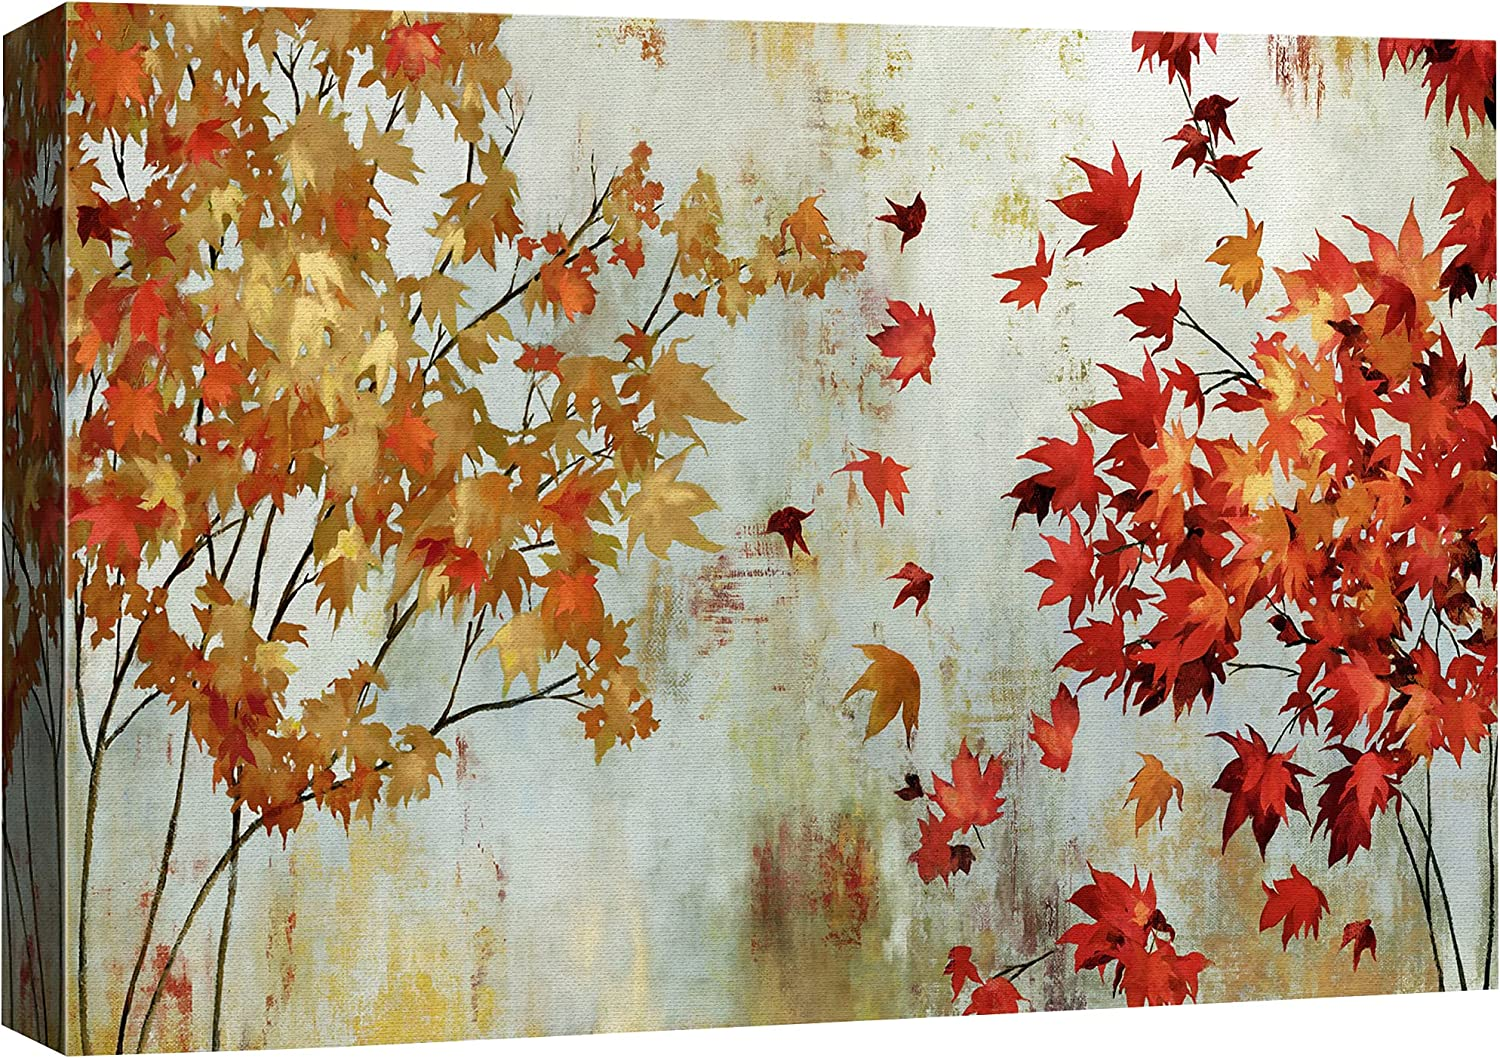 SIGNFORD Canvas Wall Art for Living Room,Bedroom Home Artwork Paintings Abstract Forest Ready to Hang - 16x24 inches